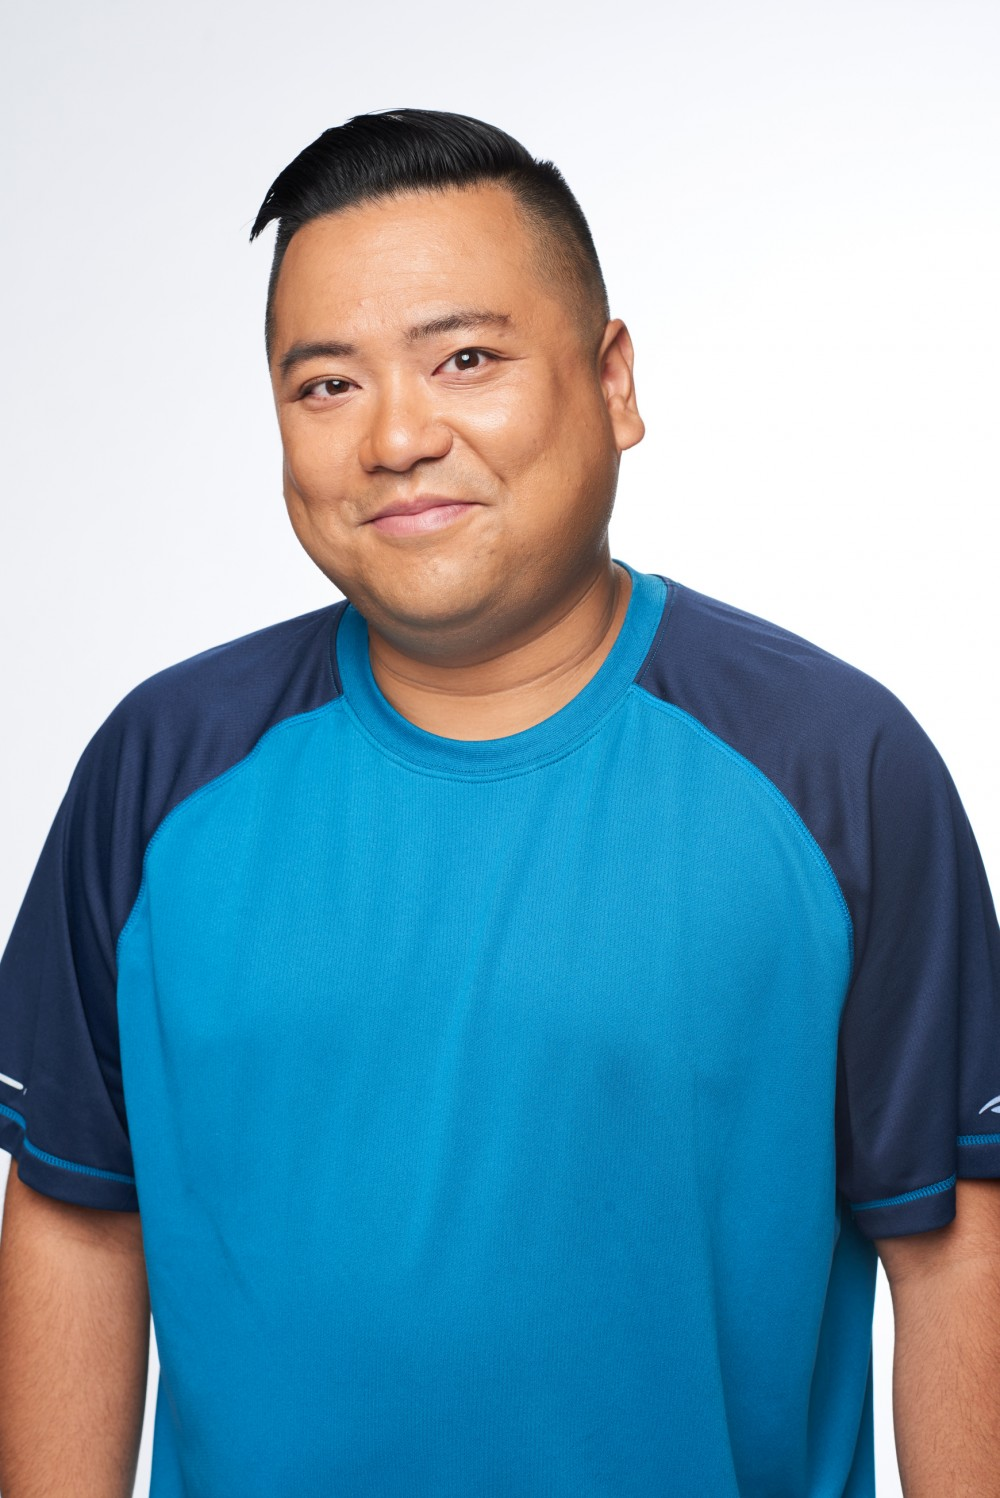 Andrew Phung nudes (58 photo), Tits, Fappening, Selfie, butt 2020